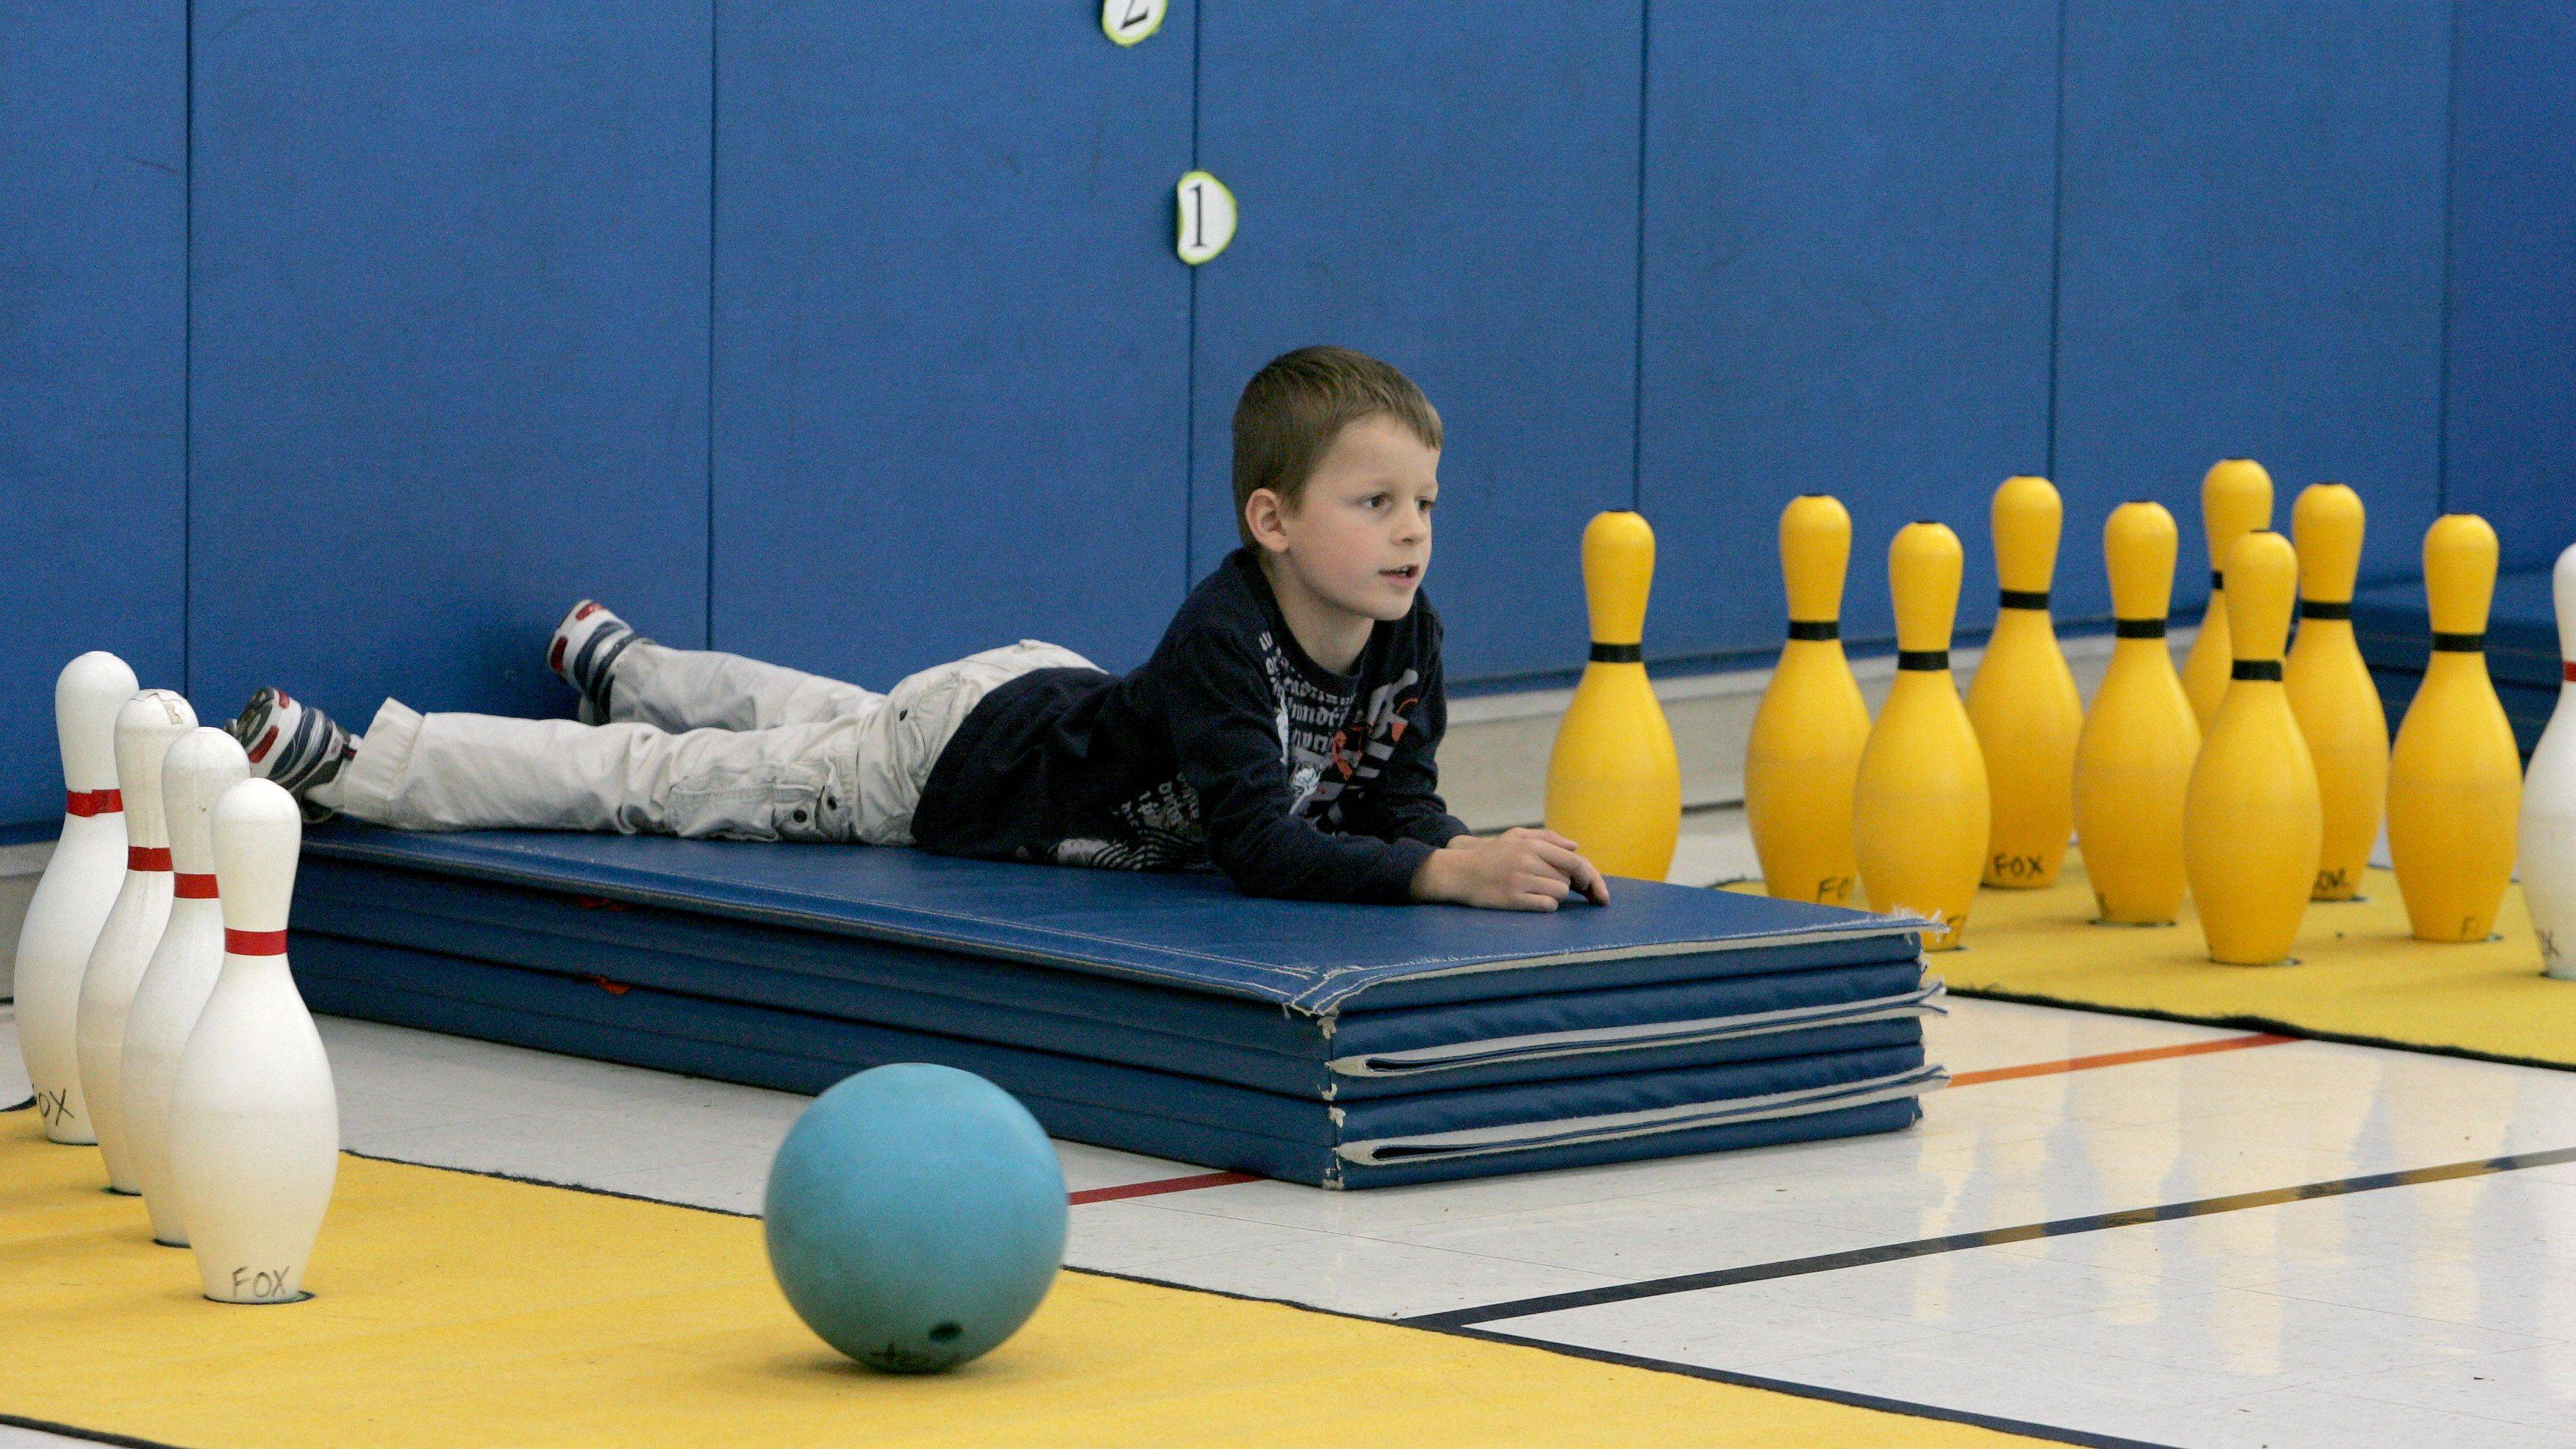 Kindergartner Micah Otts hangs out as he waits for his turn to bowl. Kids bowled with their parents at Longfellow Elementary School in Wheaton.